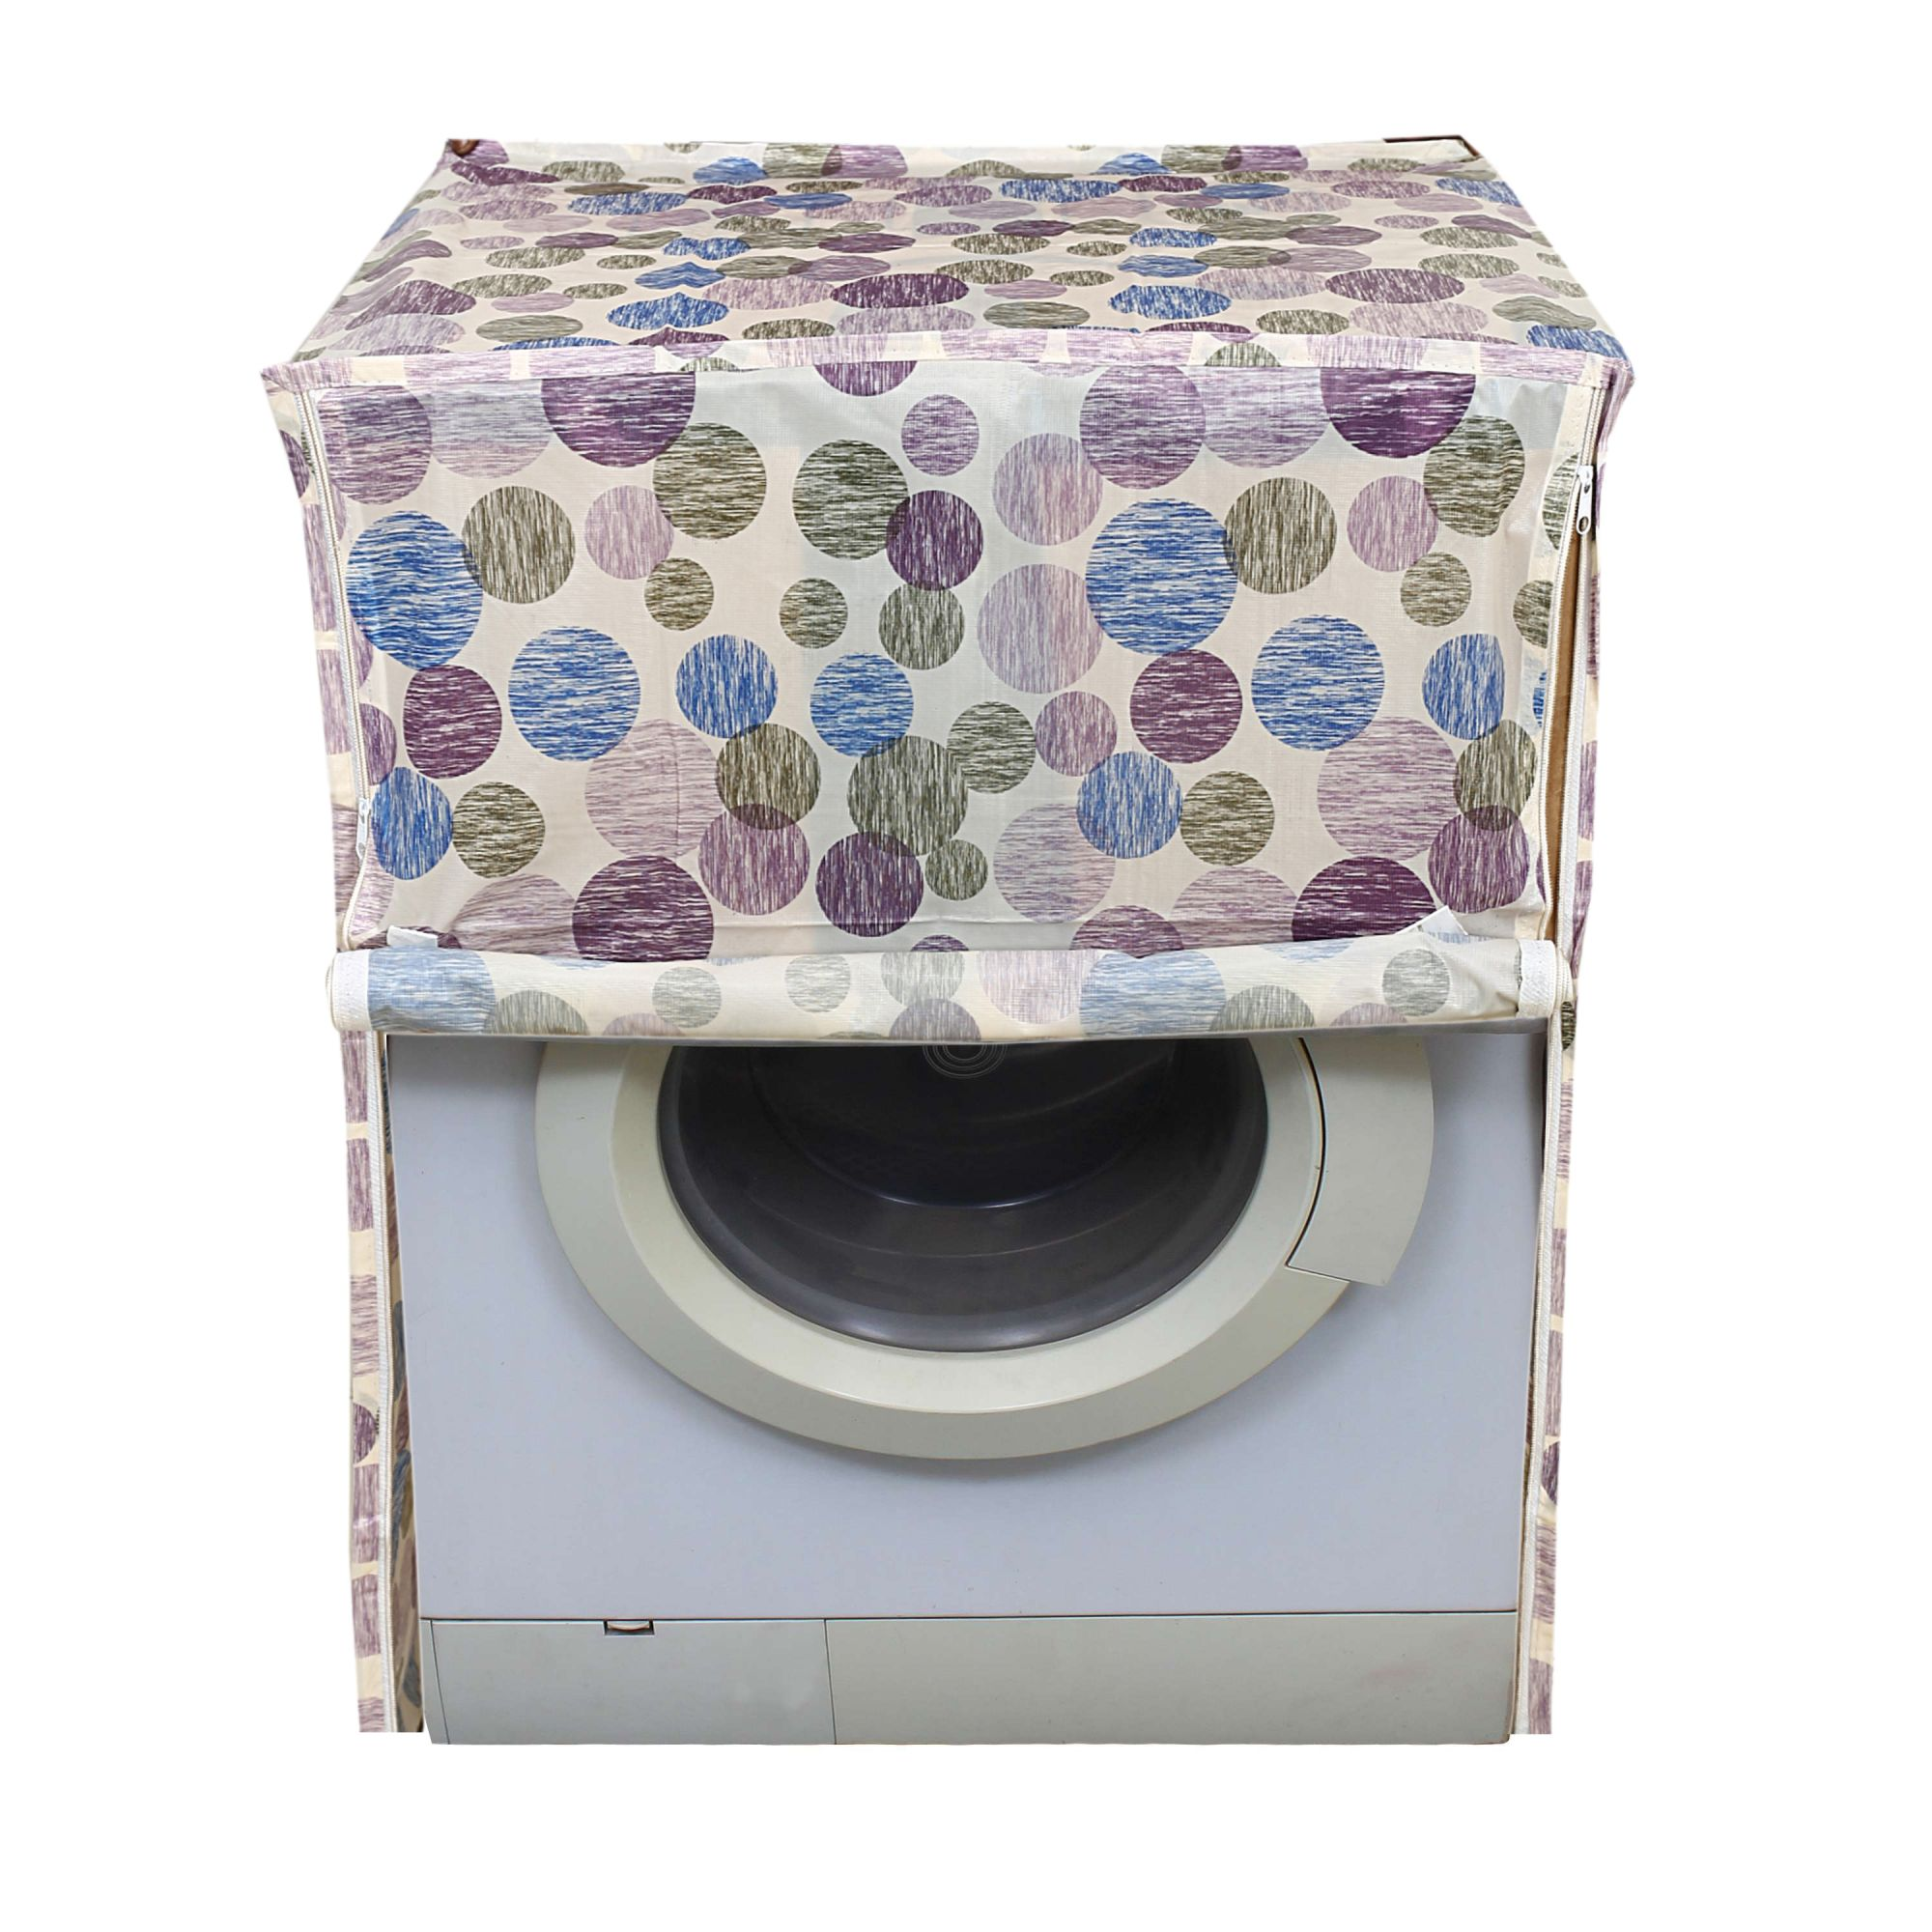 Kuber Industries PVC Front Load Fully Automatic Washing Machine Cover (Multi)-CTKTC3871